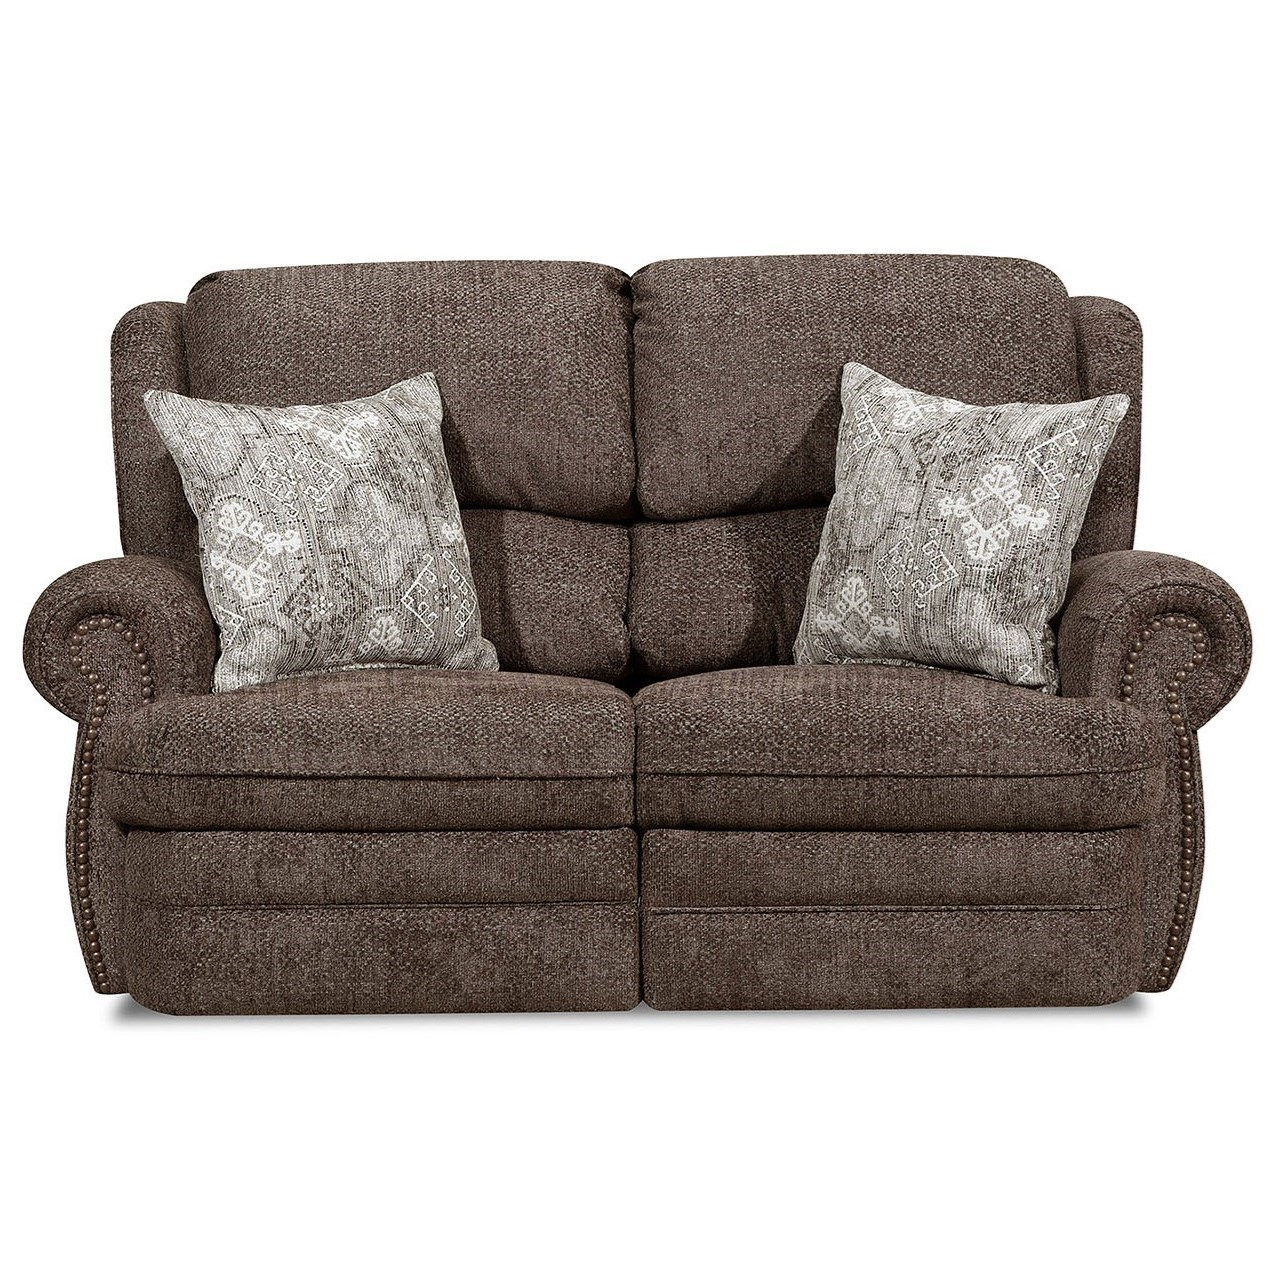 57000 Power Reclining Loveseat by United Furniture Industries at Dream Home Interiors